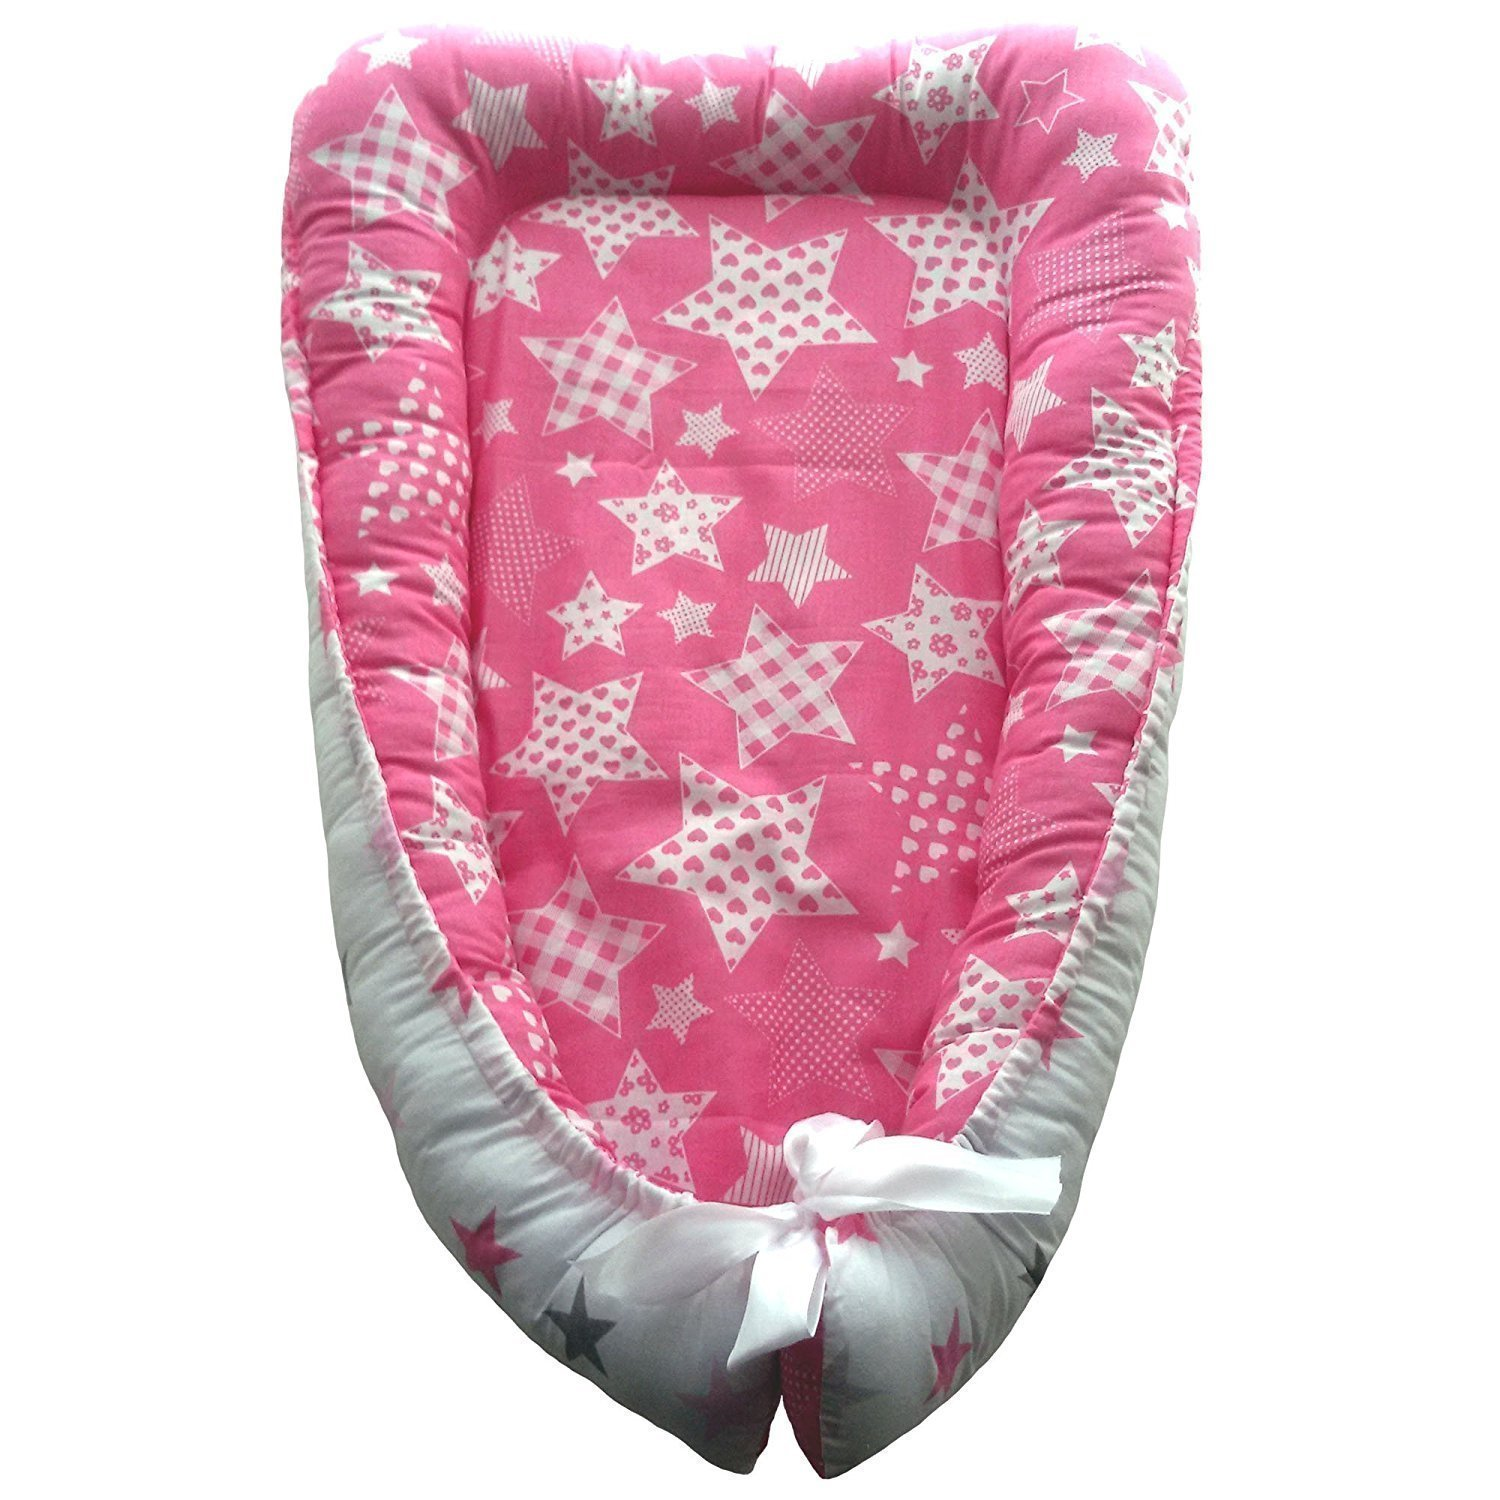 Double-Sided Baby nest, Baby Nest Pink, Newborn Sleep Bed, Cocoon-Cradle, Newborn Baby Nest, Pink Baby Nest bobka